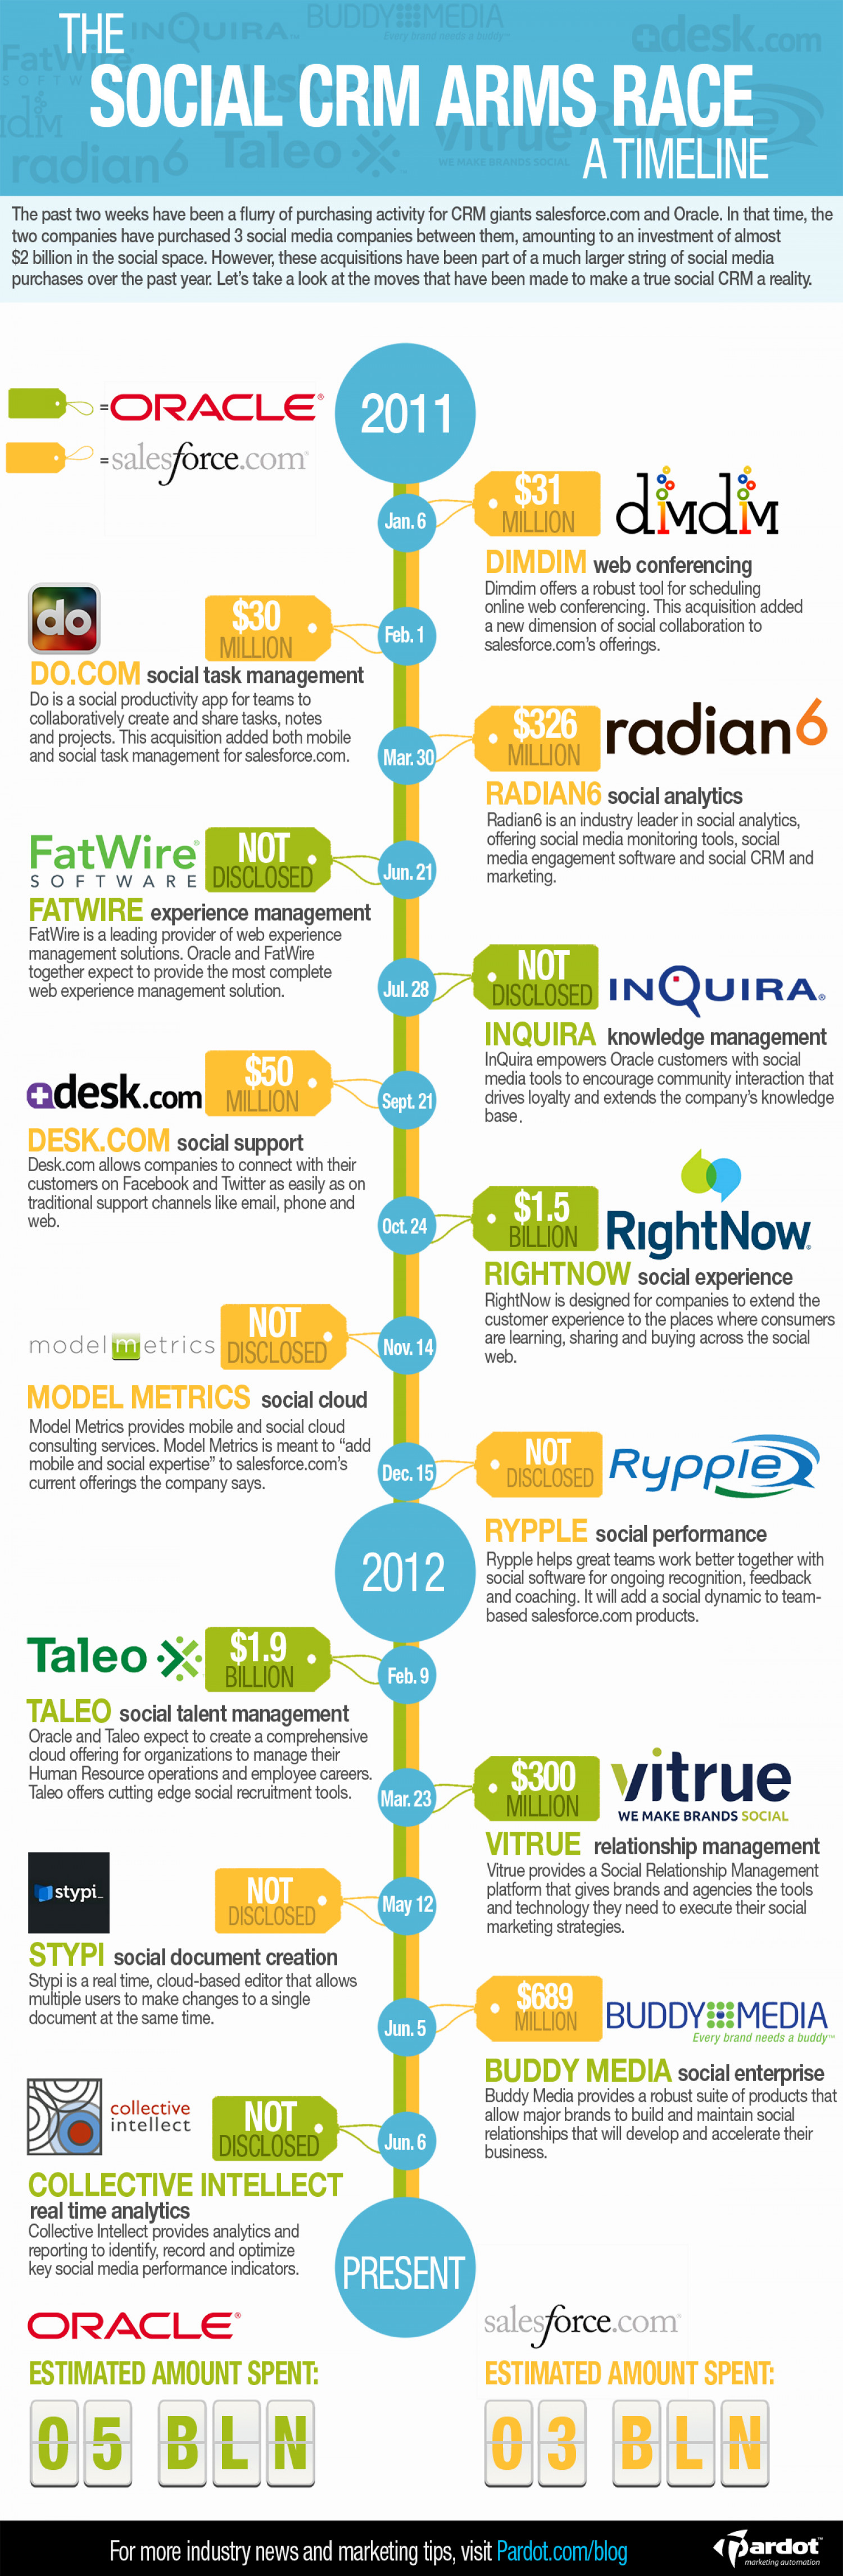 A Timeline of the Social CRM Arms Race  Infographic